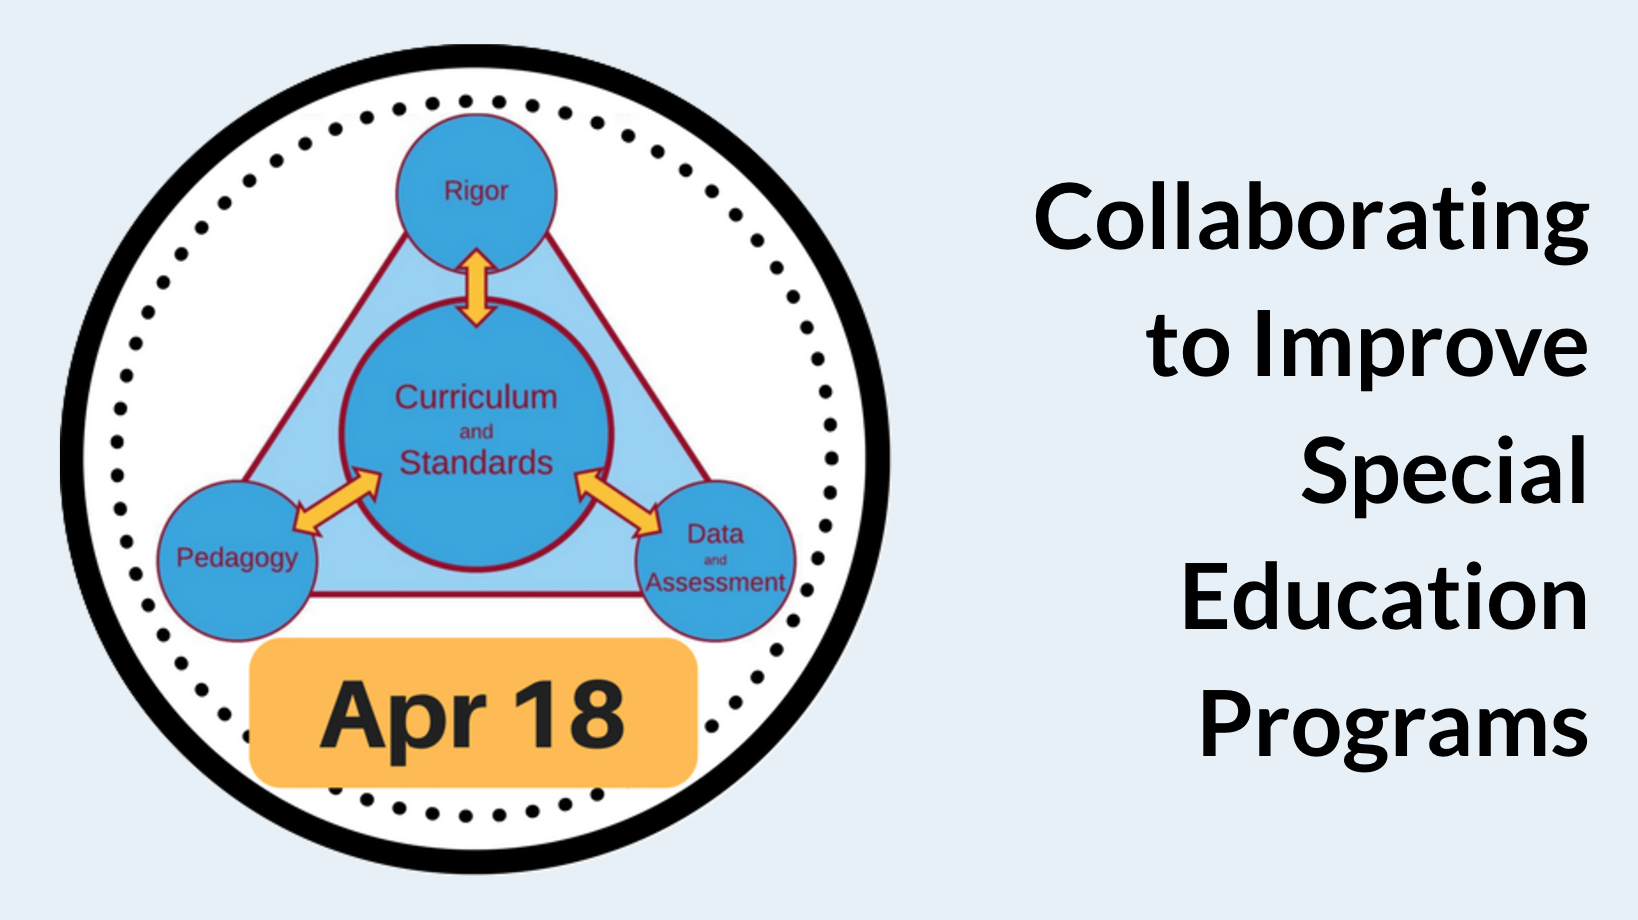 How Can We Improve Special Education >> April 18 Collaborating To Improve Special Education Programs